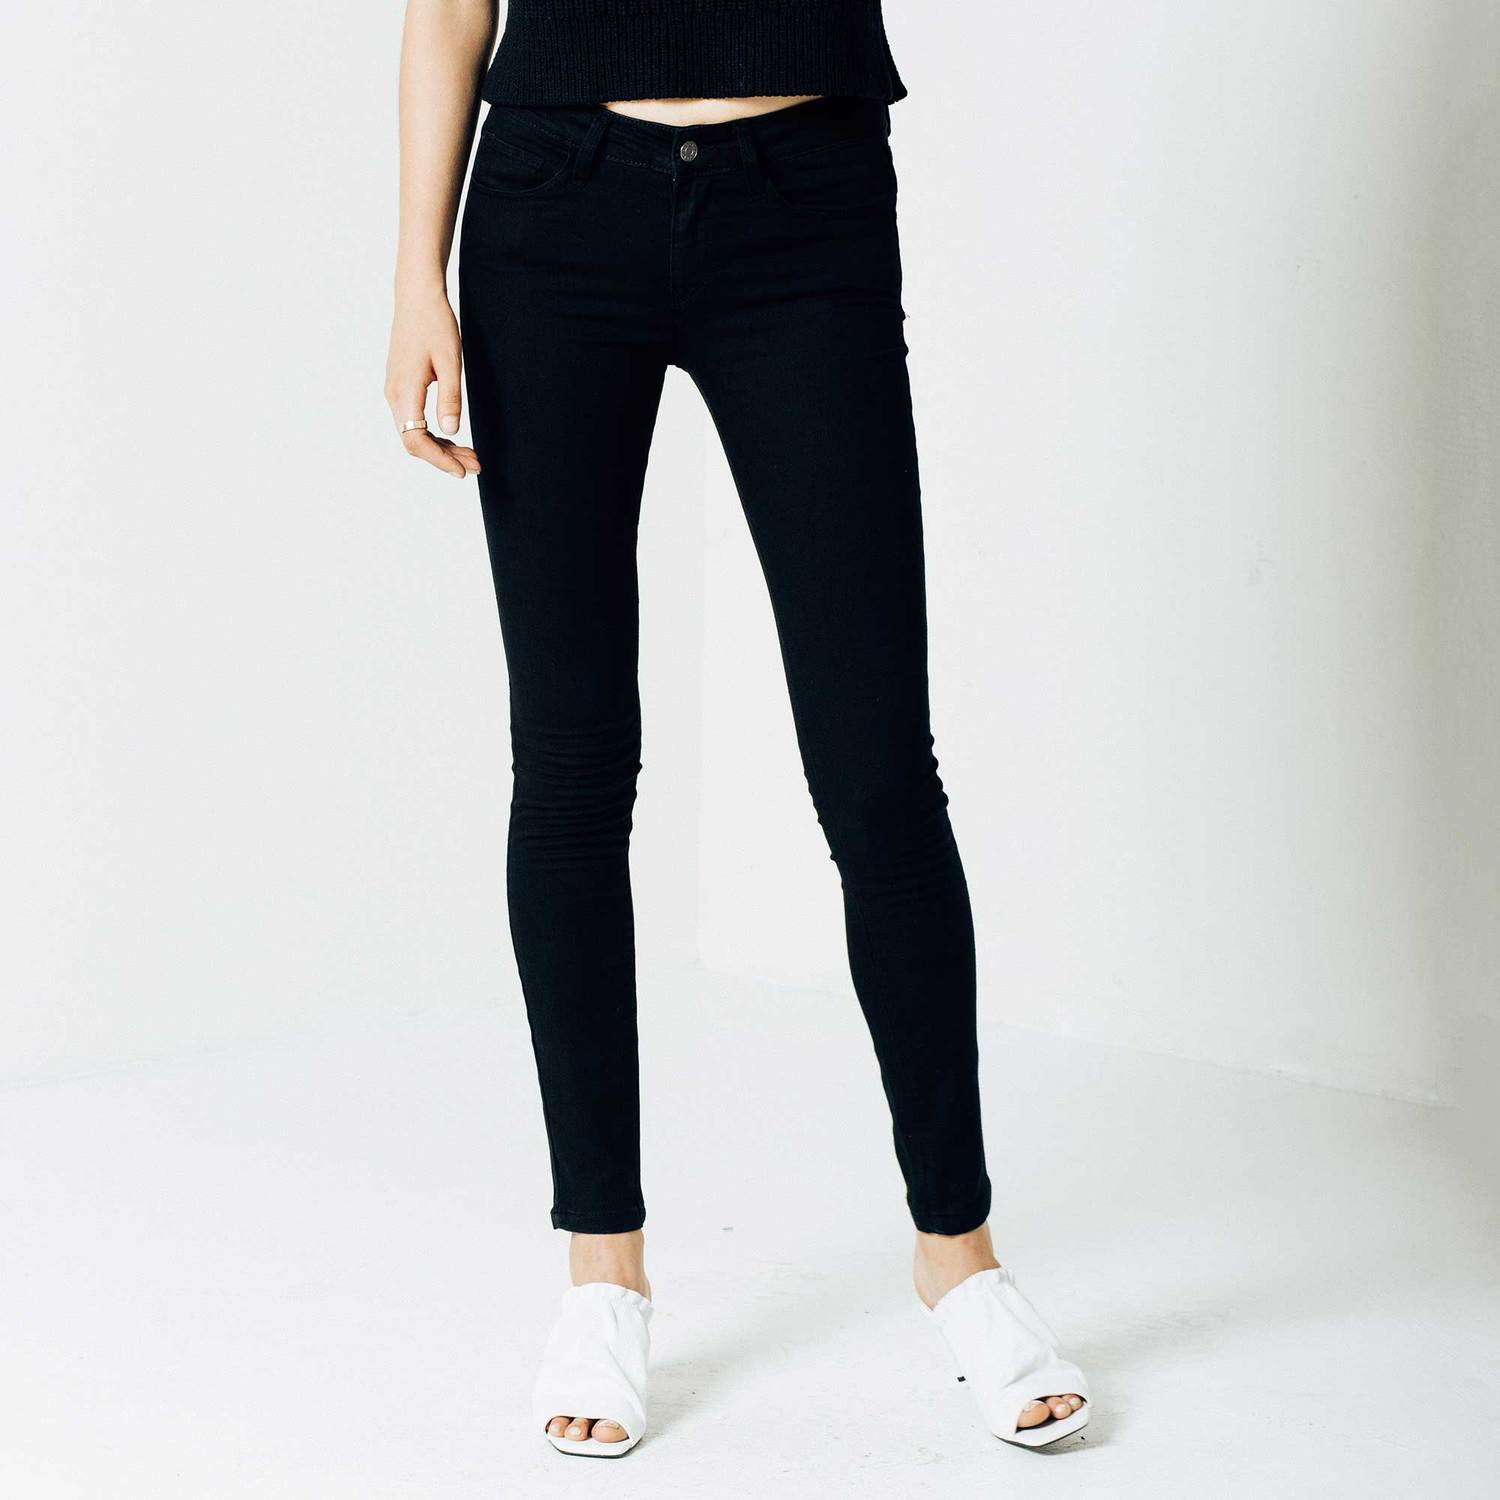 e966071f046 womens-mid-rise-skinny-jeans-in-black-powerstretch by